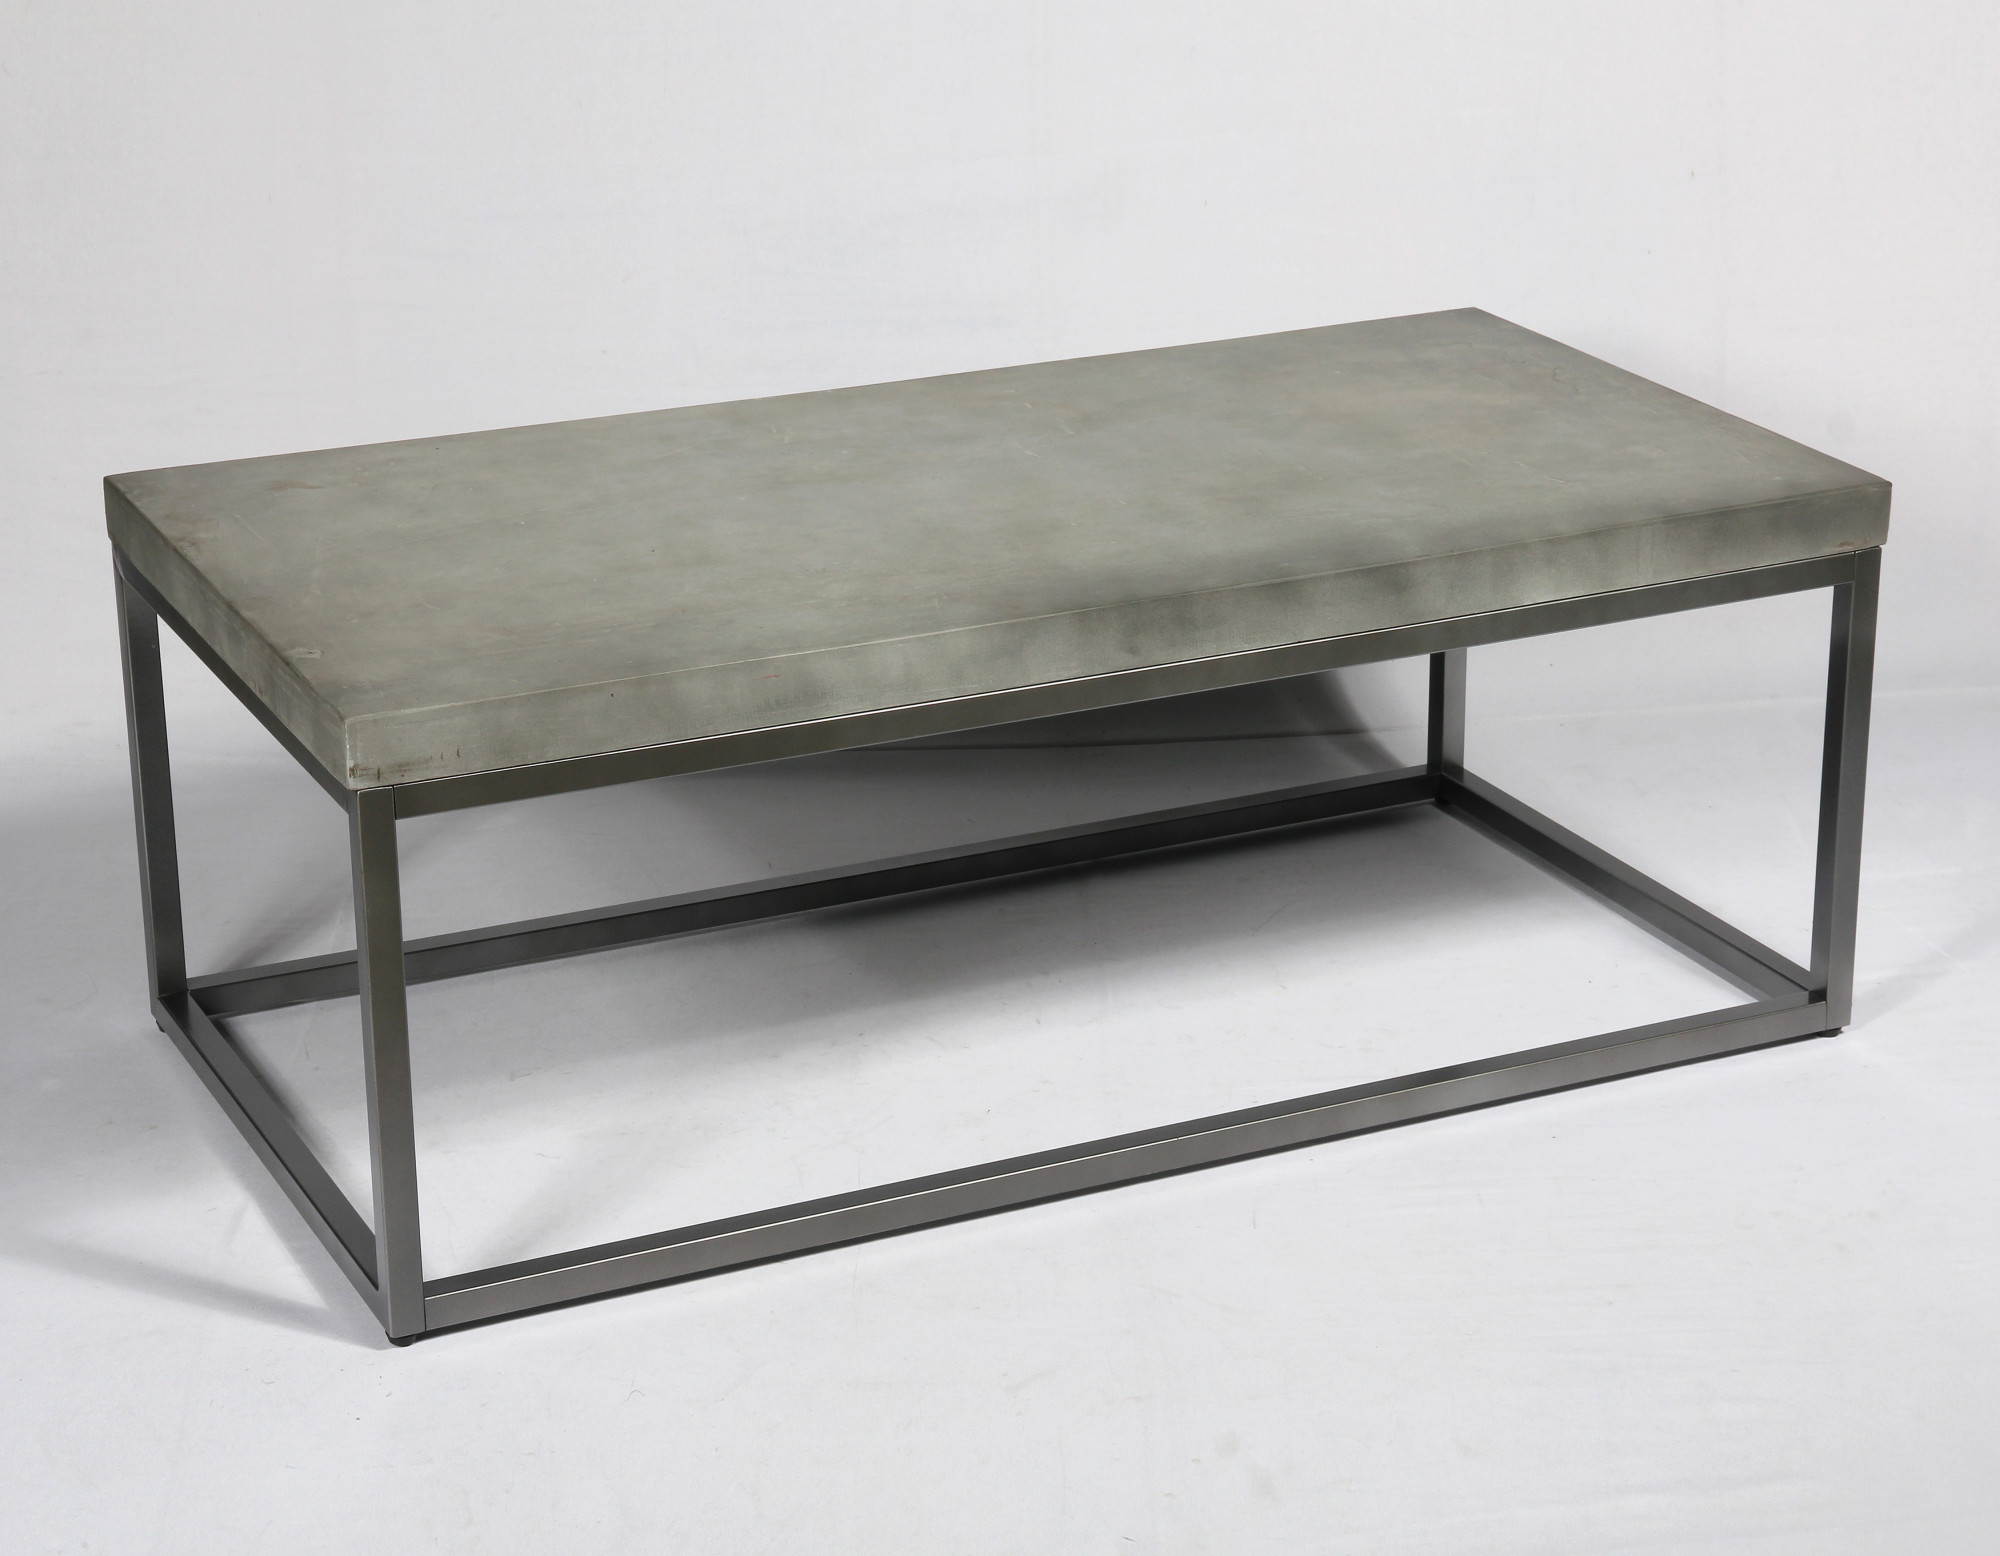 emerald home onyx aged concrete and brushed nickel 48 coffee table with rustic concrete look top and modern metal frame walmart com